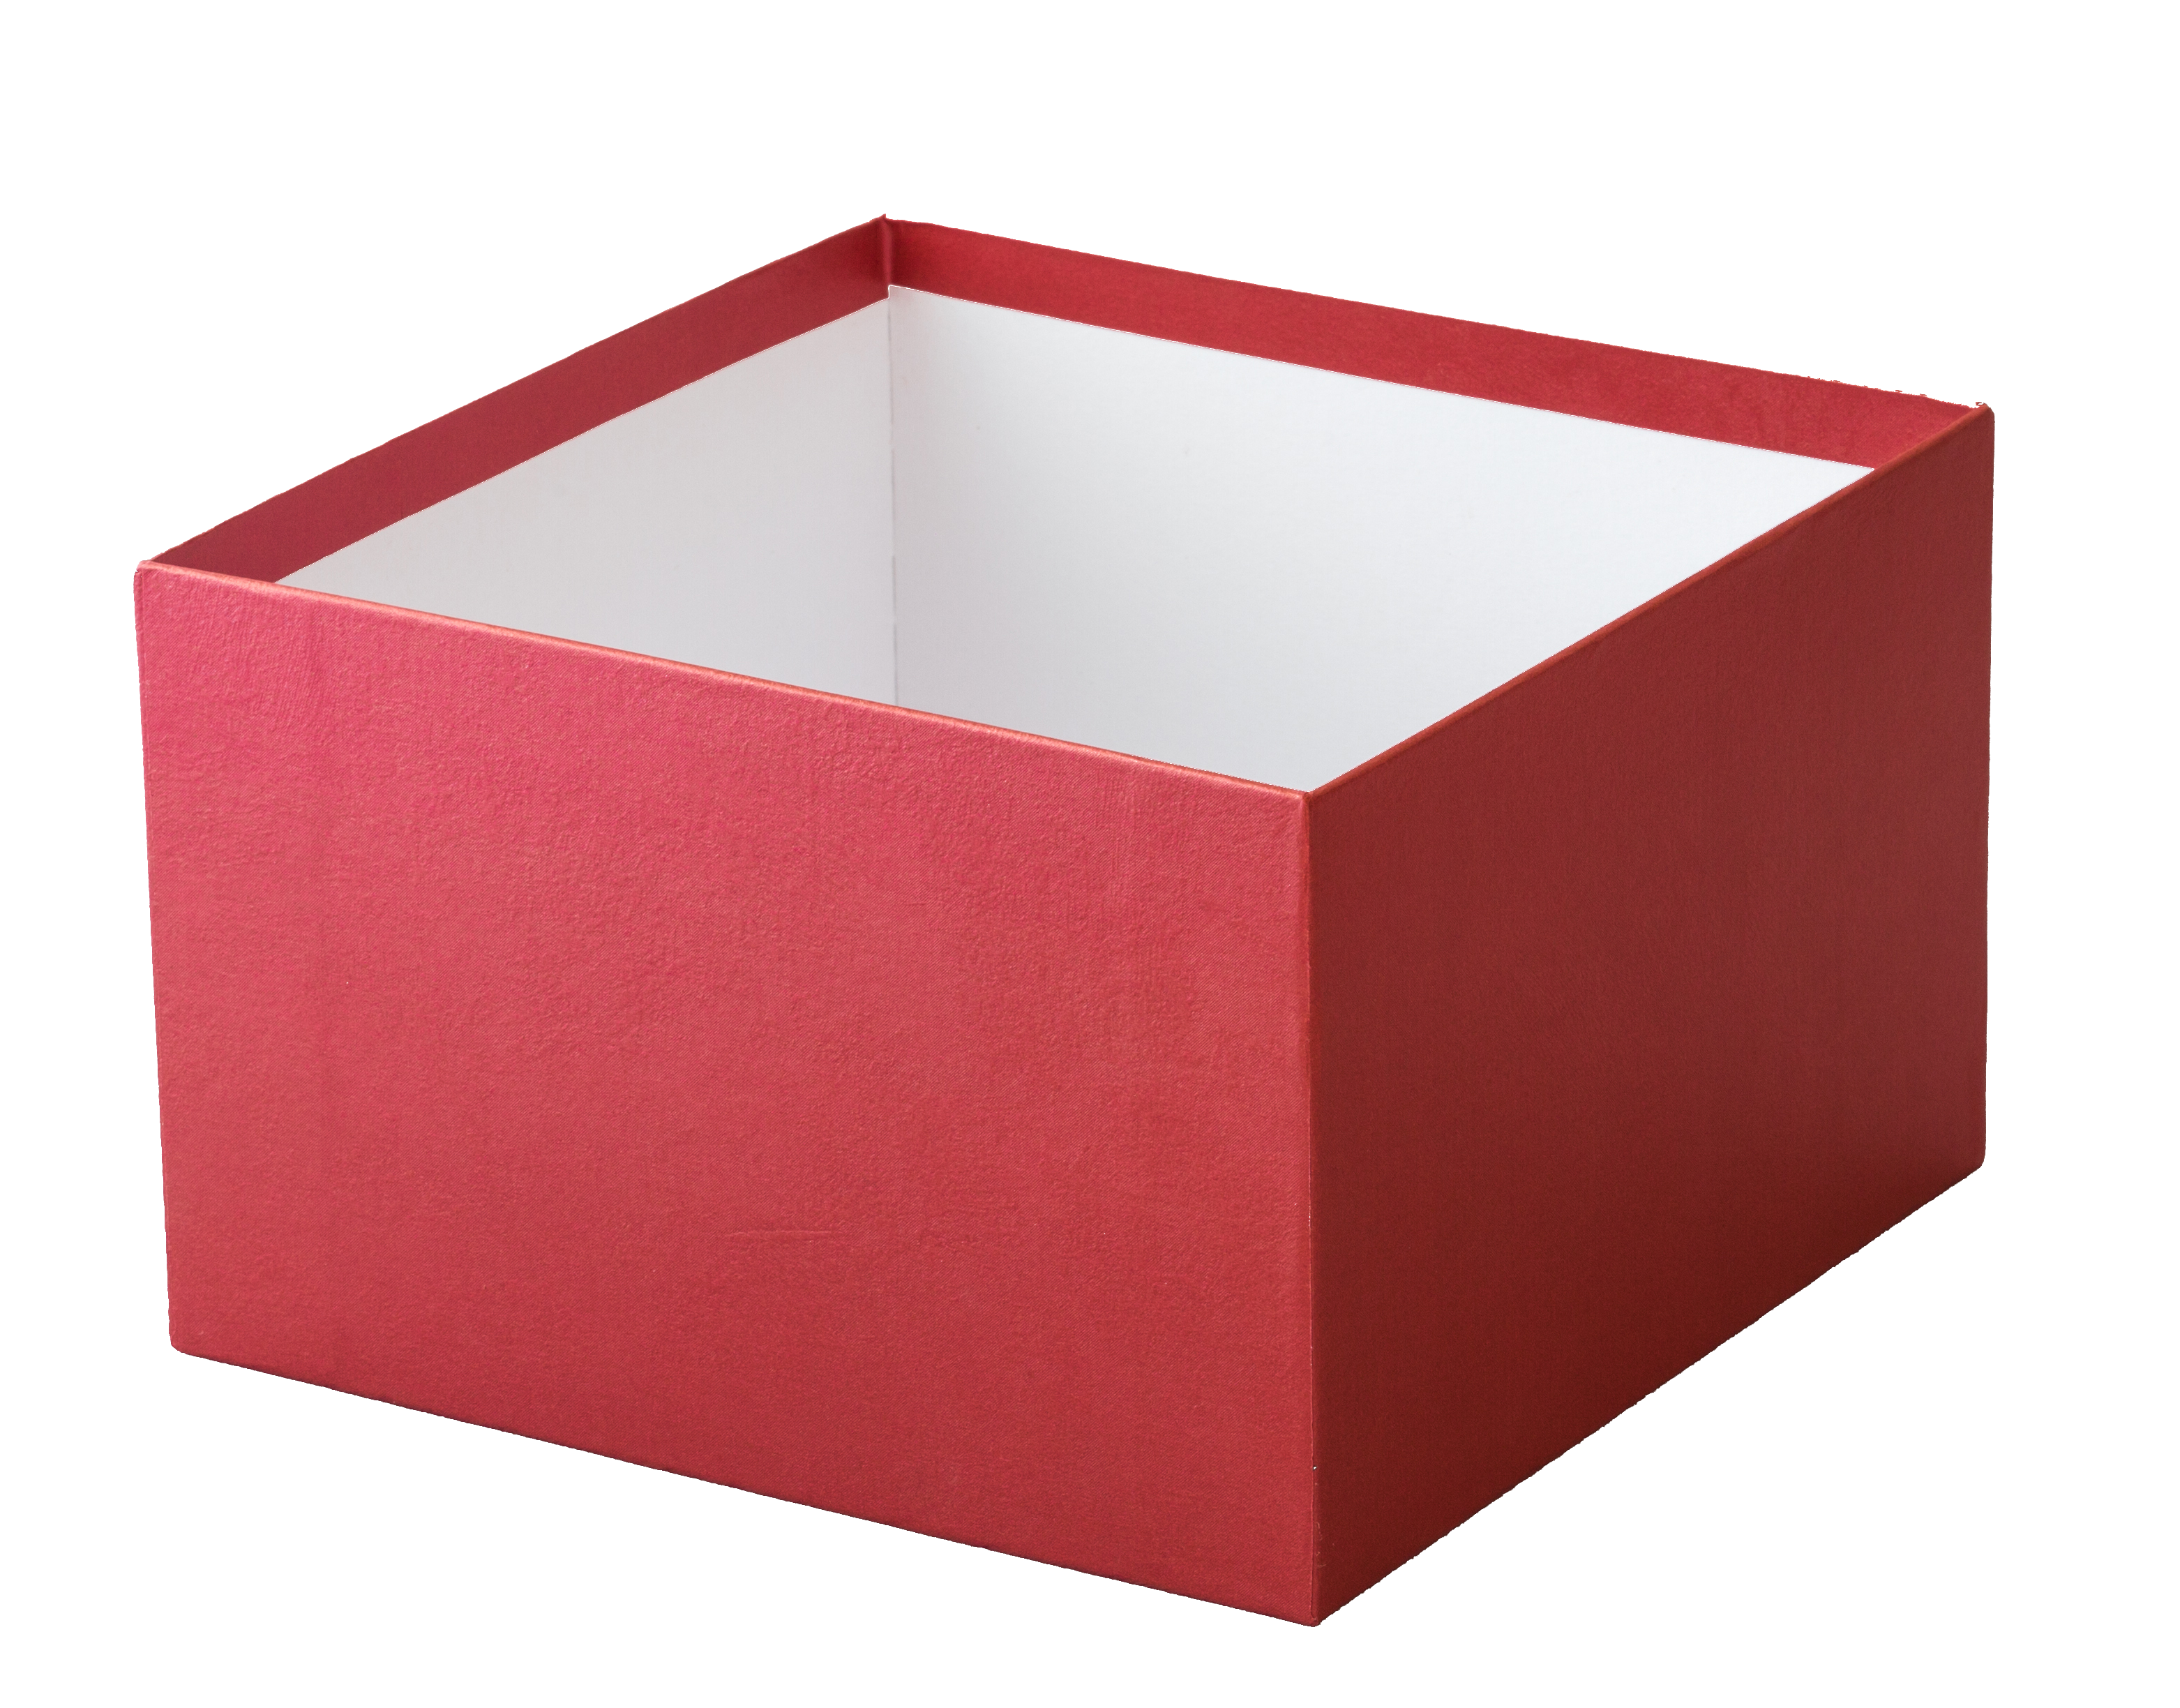 Empty box png. Gratis red transprent free